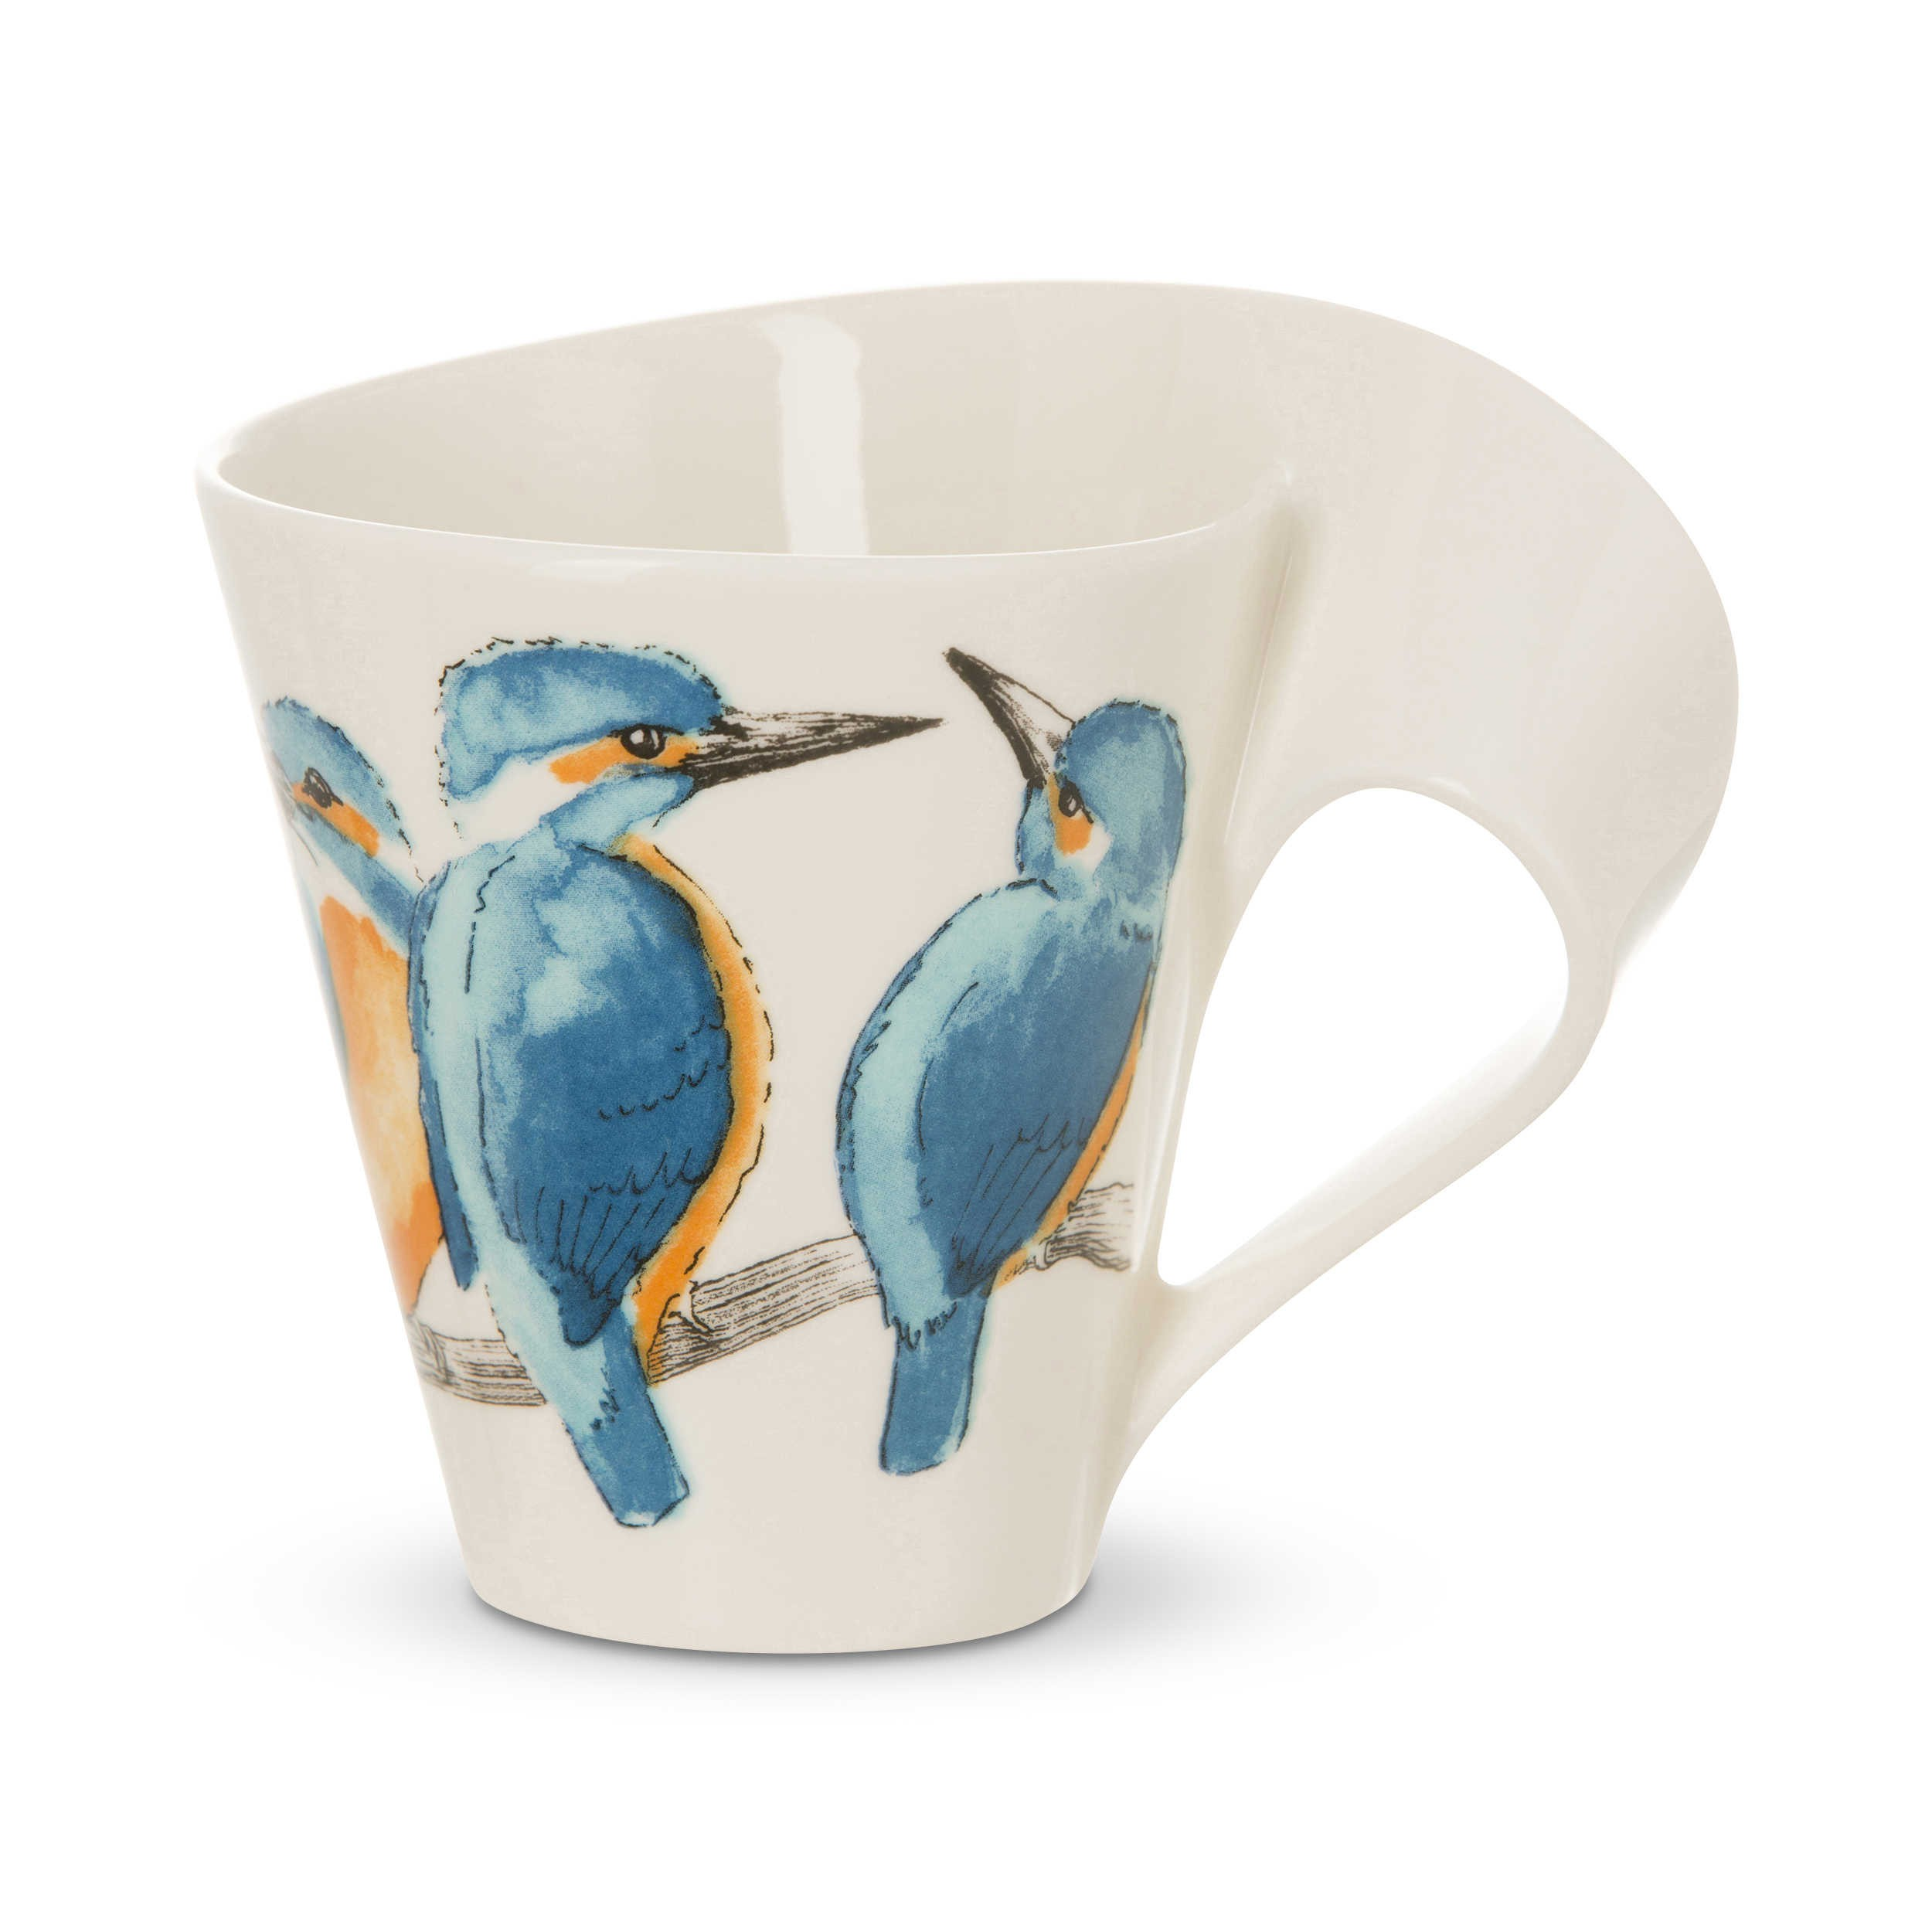 Villeroy boch kaffeebecher new wave eisvogel online for Villeroy boch wave